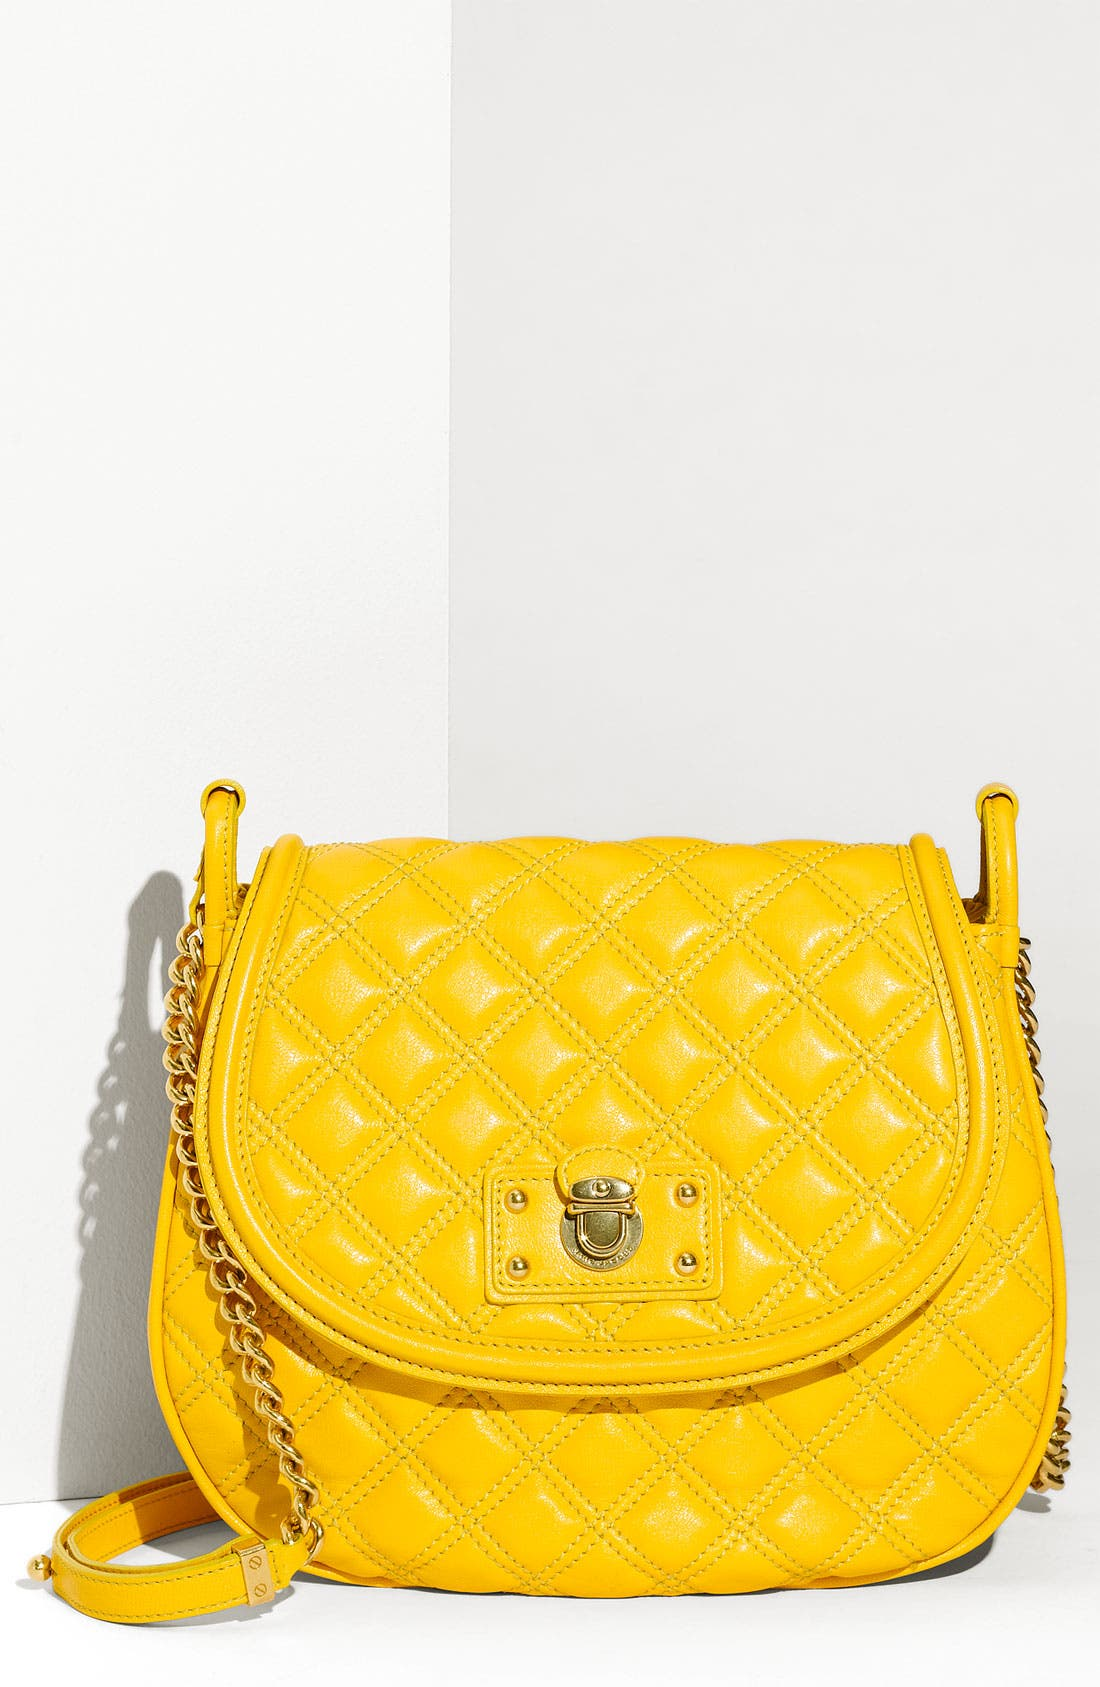 Main Image - MARC JACOBS 'Cooper - Large' Leather Crossbody Bag